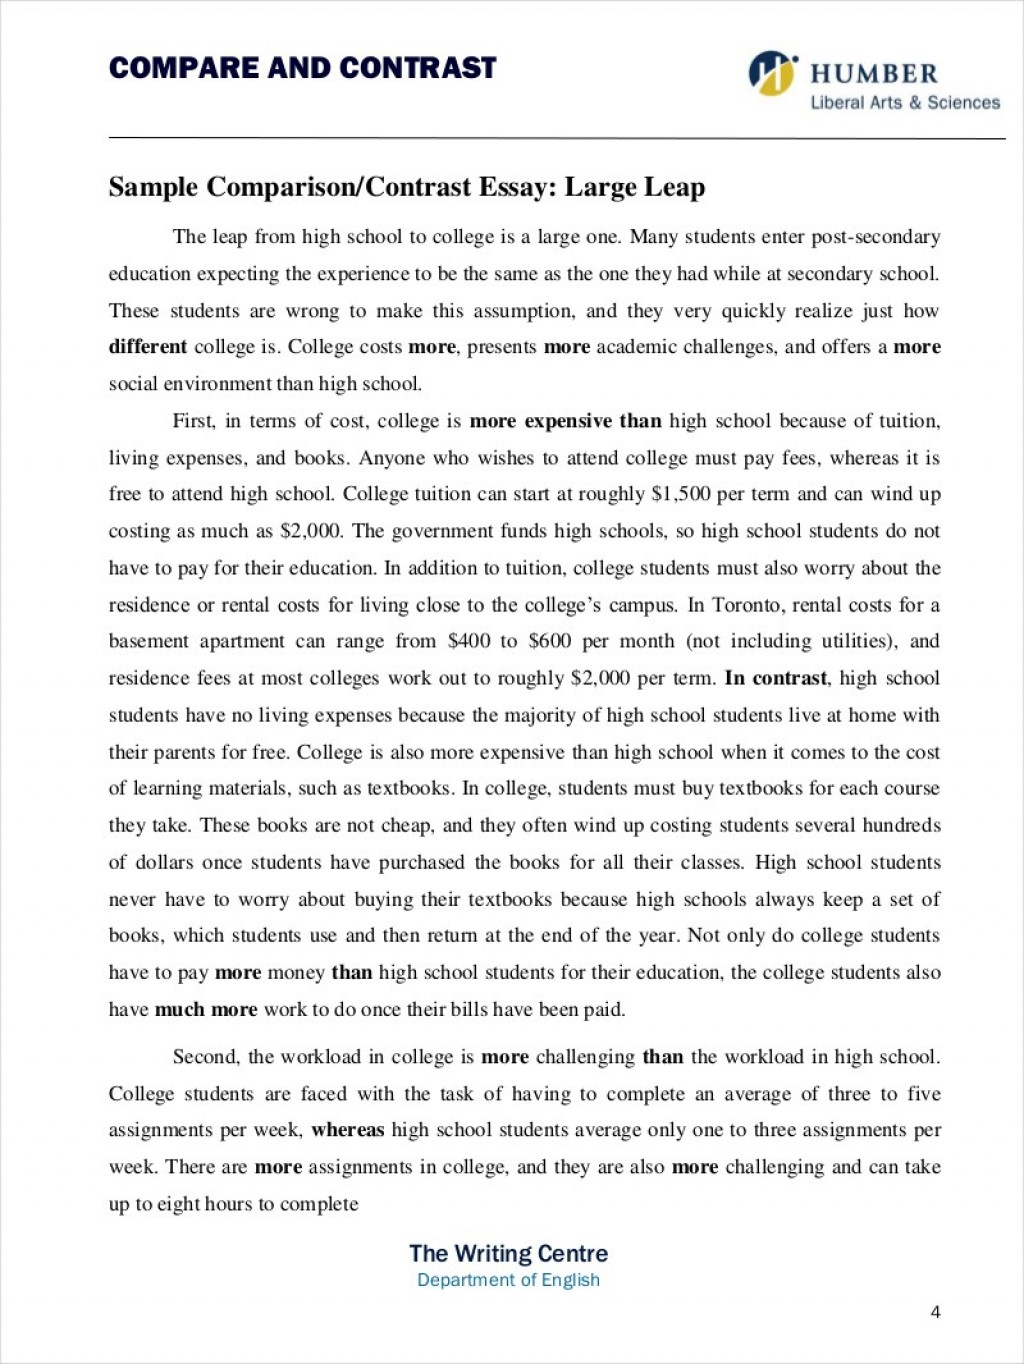 008 Comparing And Contrasting Essay Example Comparative Samples Free Pdf Format Download Examples Of Compare Contrast Unique Essays For High School Thesis Large